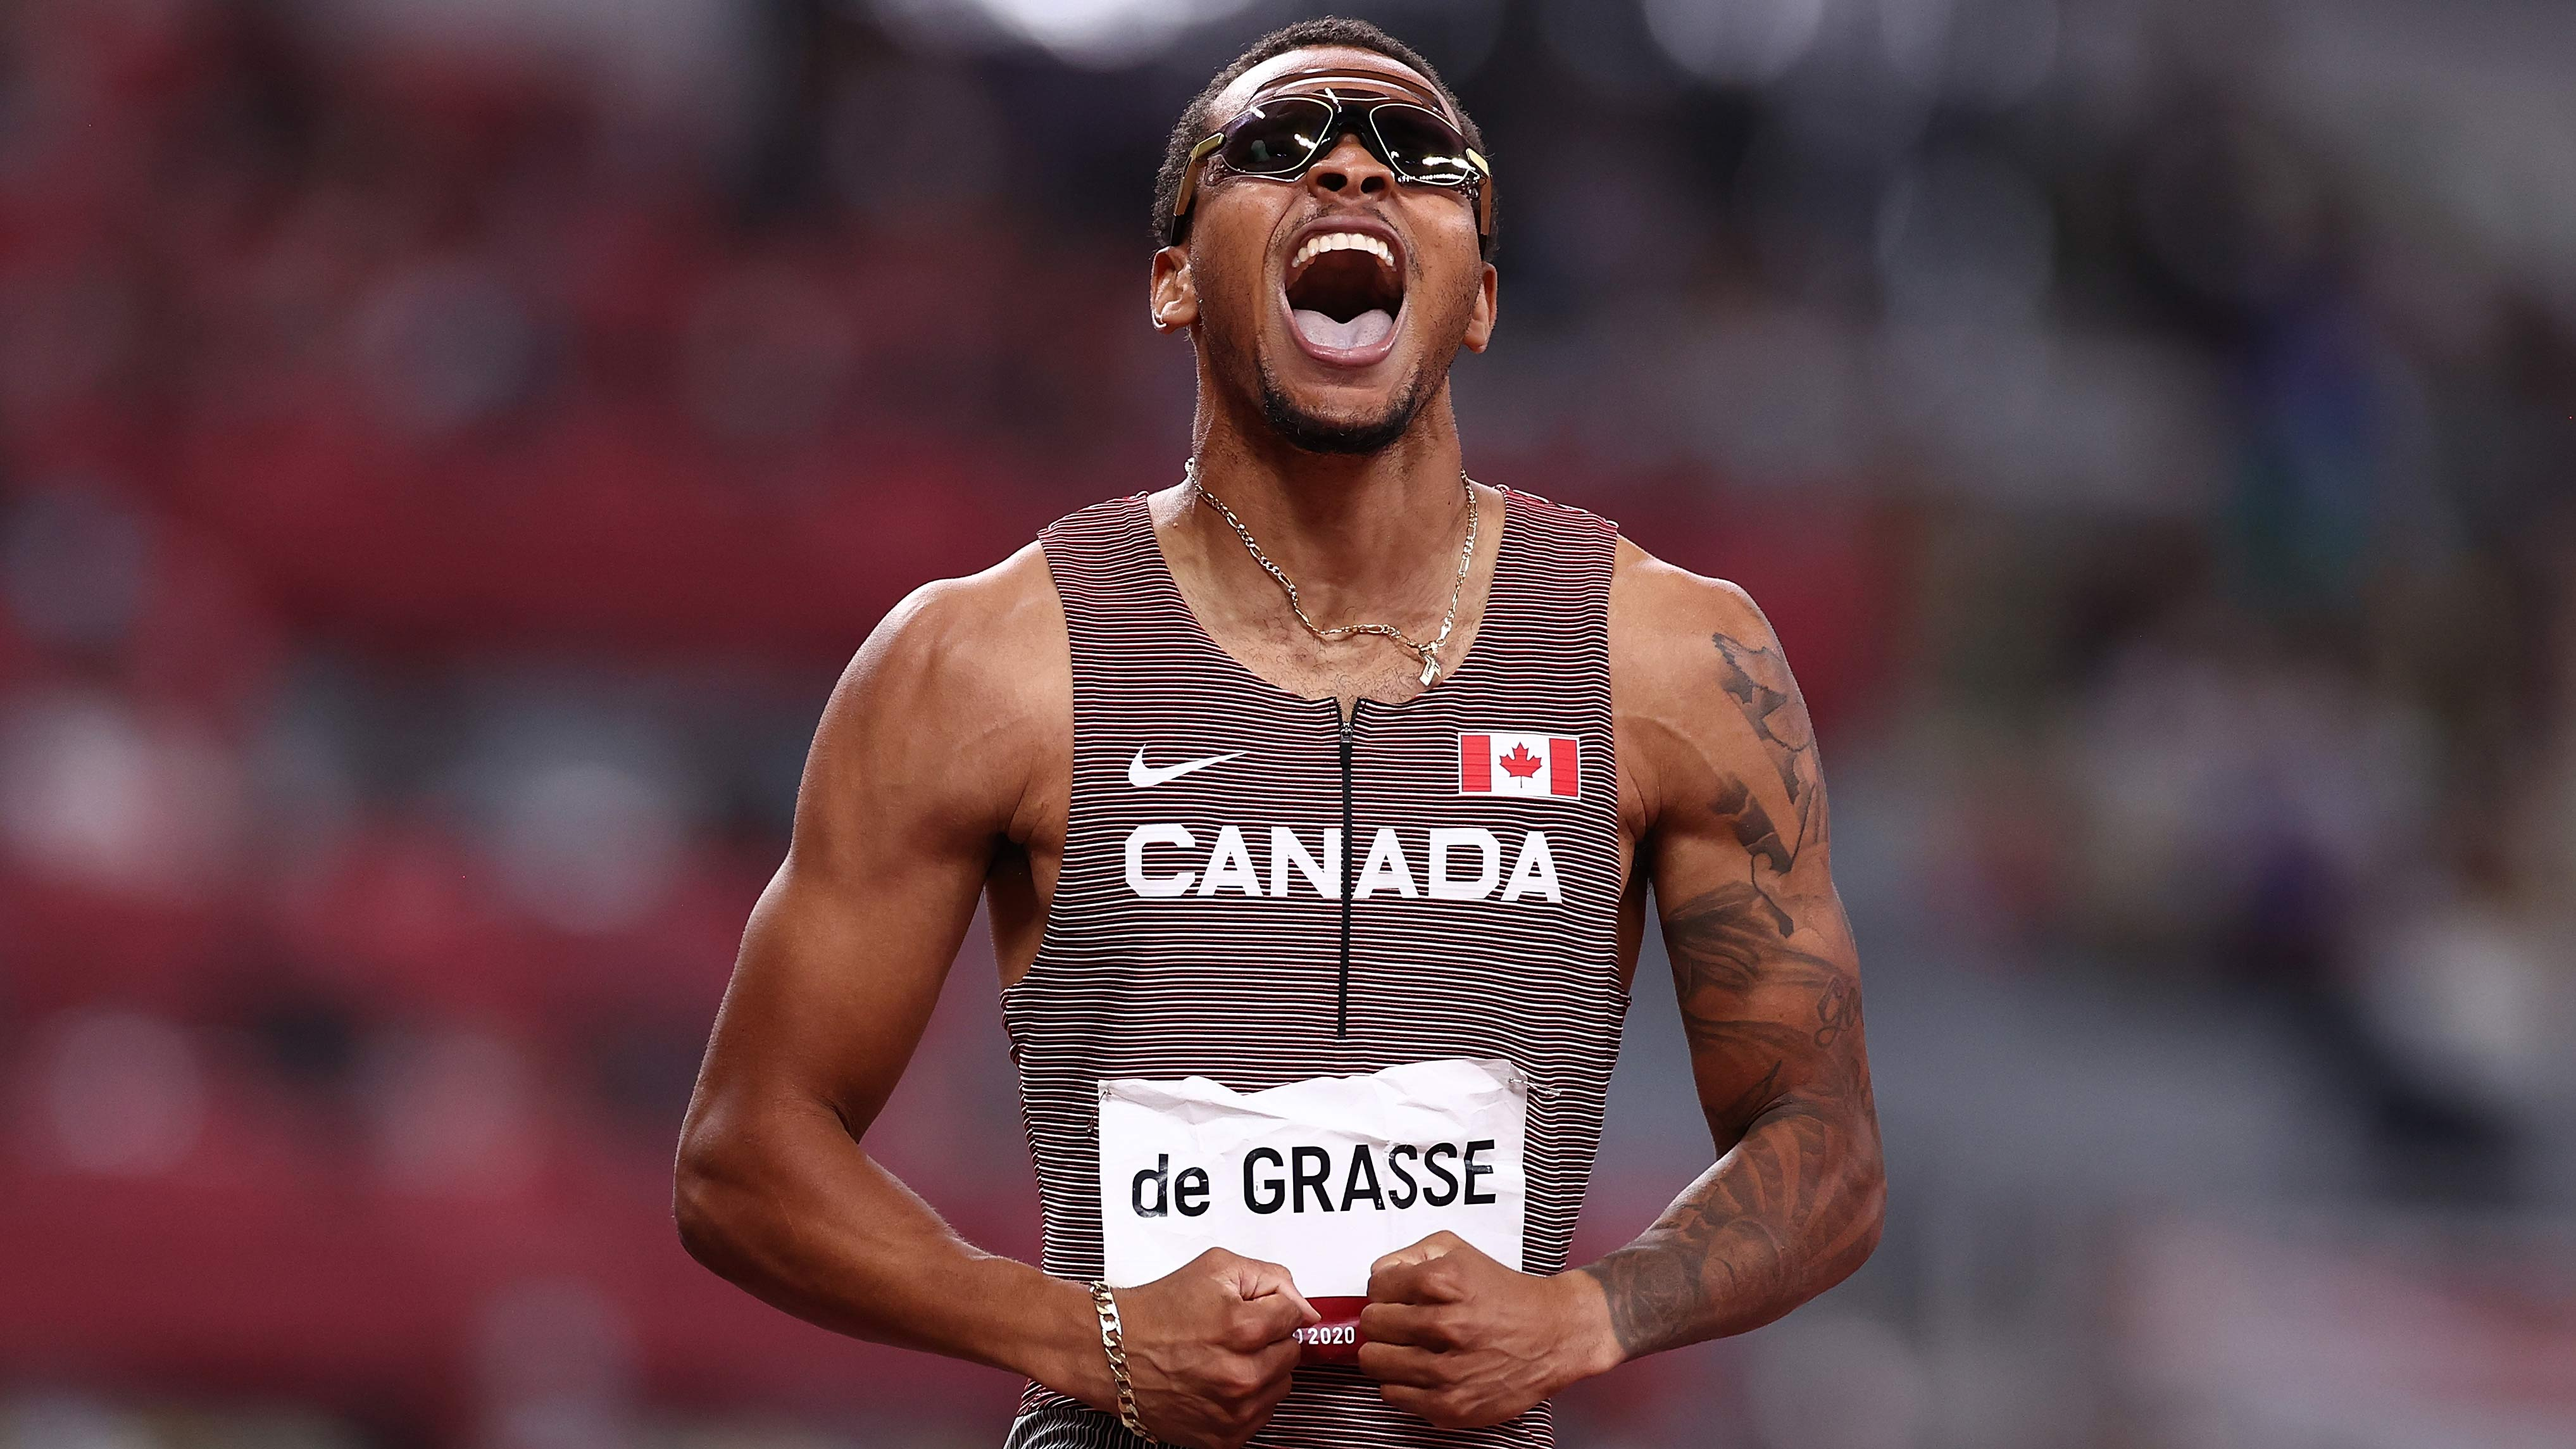 Canada's Andre de Grasse celebrates after winning the gold medal in the 200m on August 4.